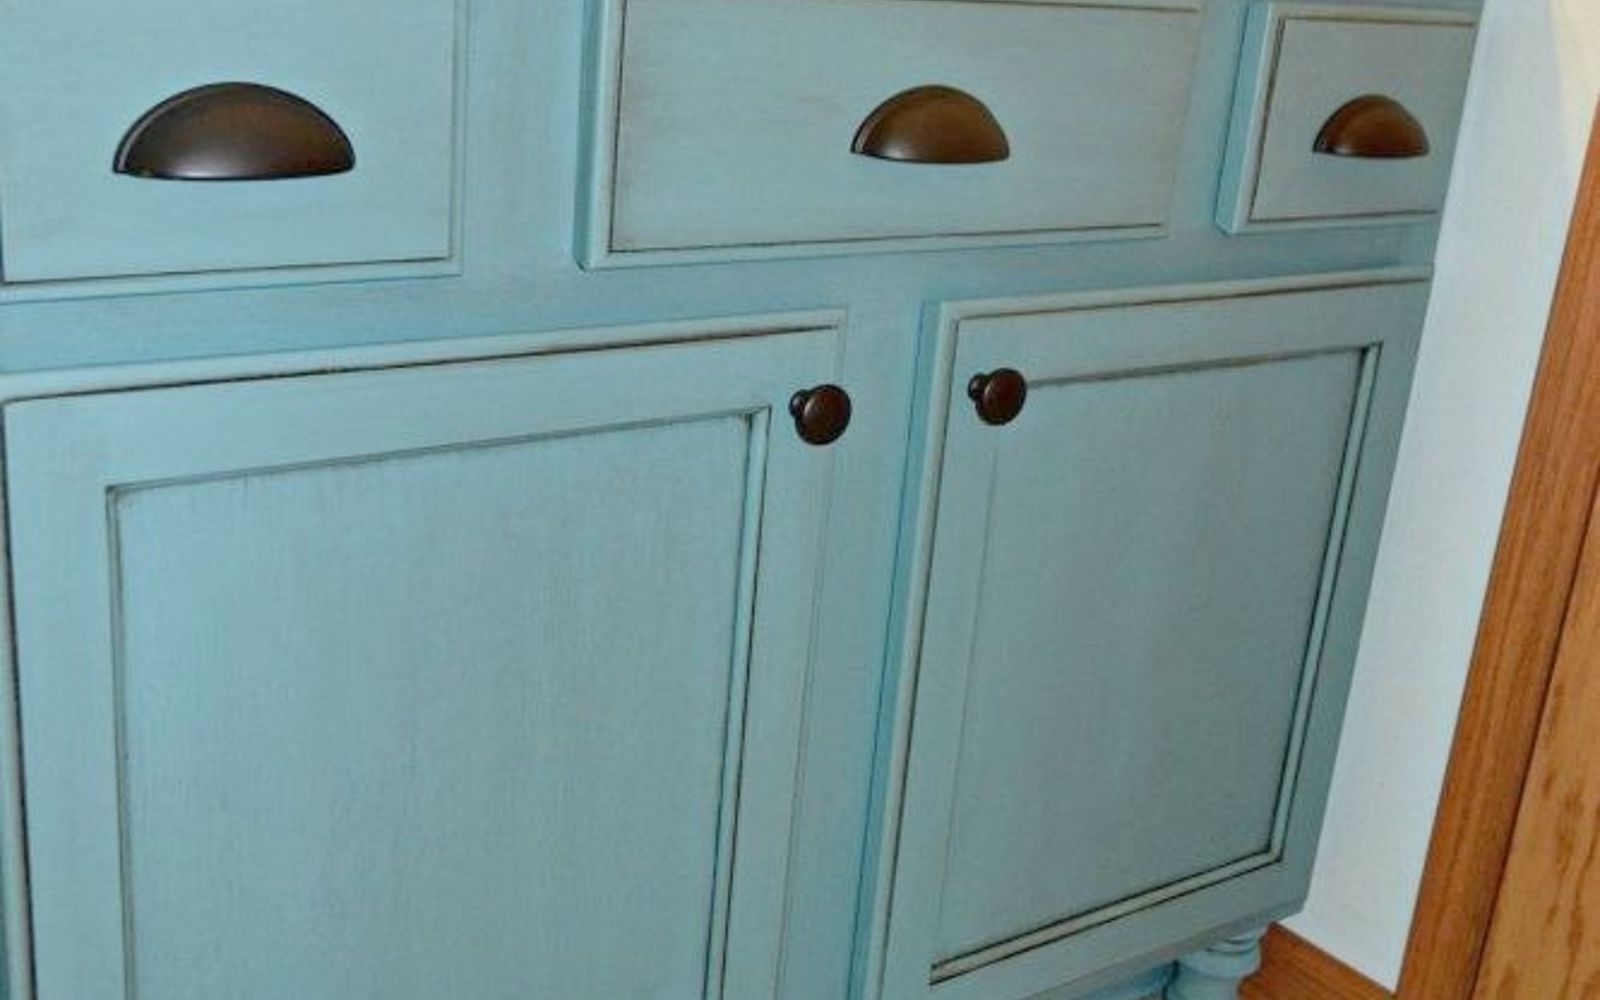 Redo Bathroom Cabinets Amusing 11 Lowcost Ways To Replace Or Redo A Hideous Bathroom Vanity . Design Ideas